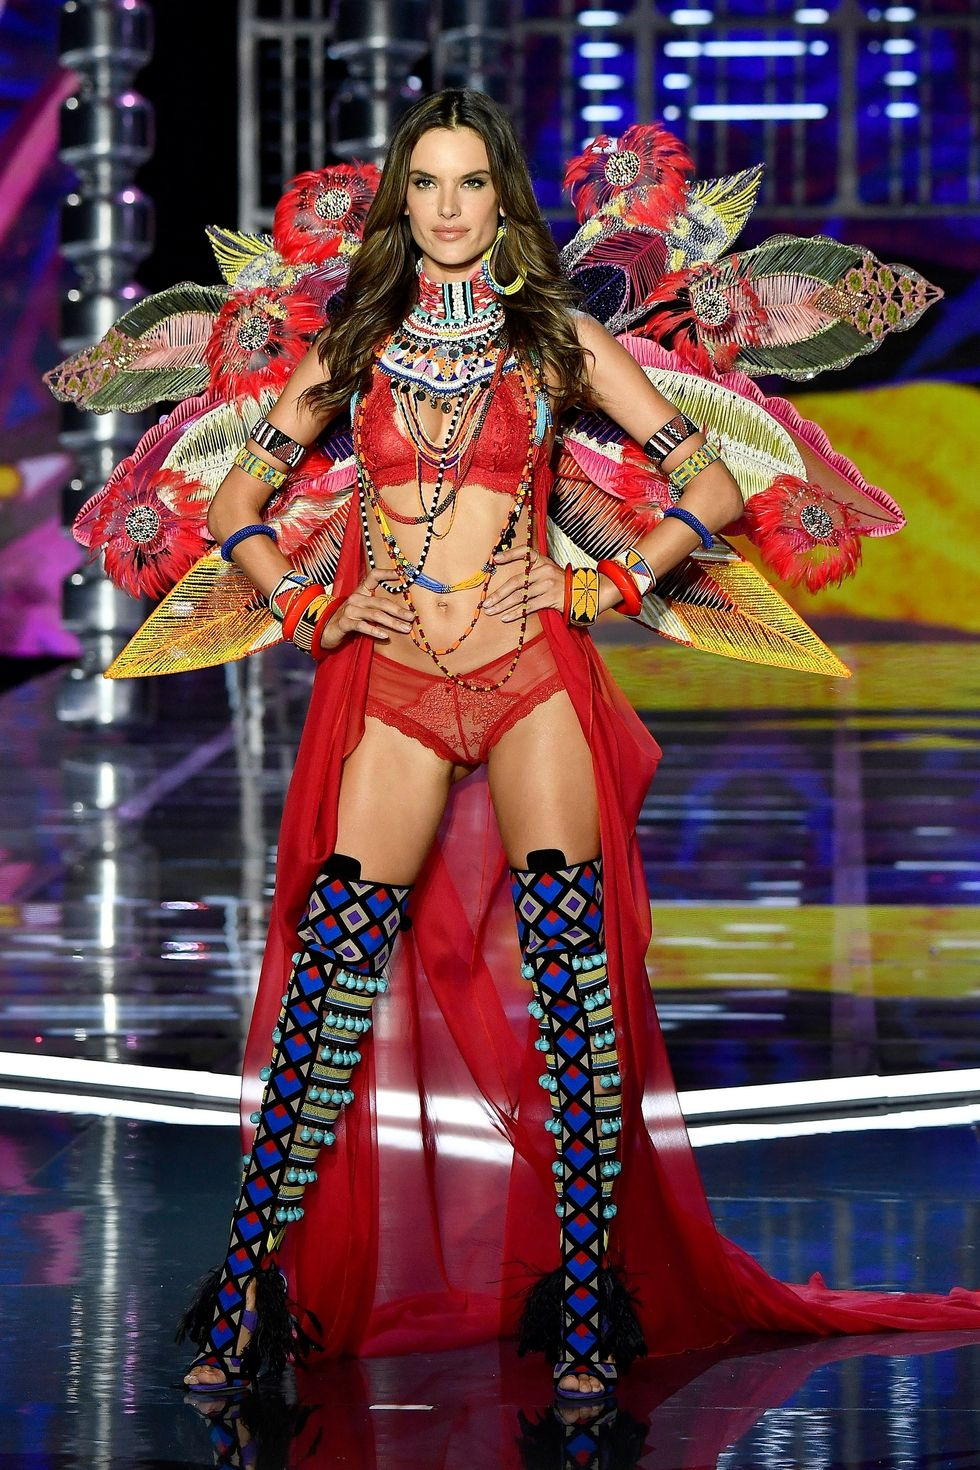 Alessandra Amrbosio - Pretty in Red, this Angel walked down with native inspired leggings and tribal patterned accessories. Exotic and hot.